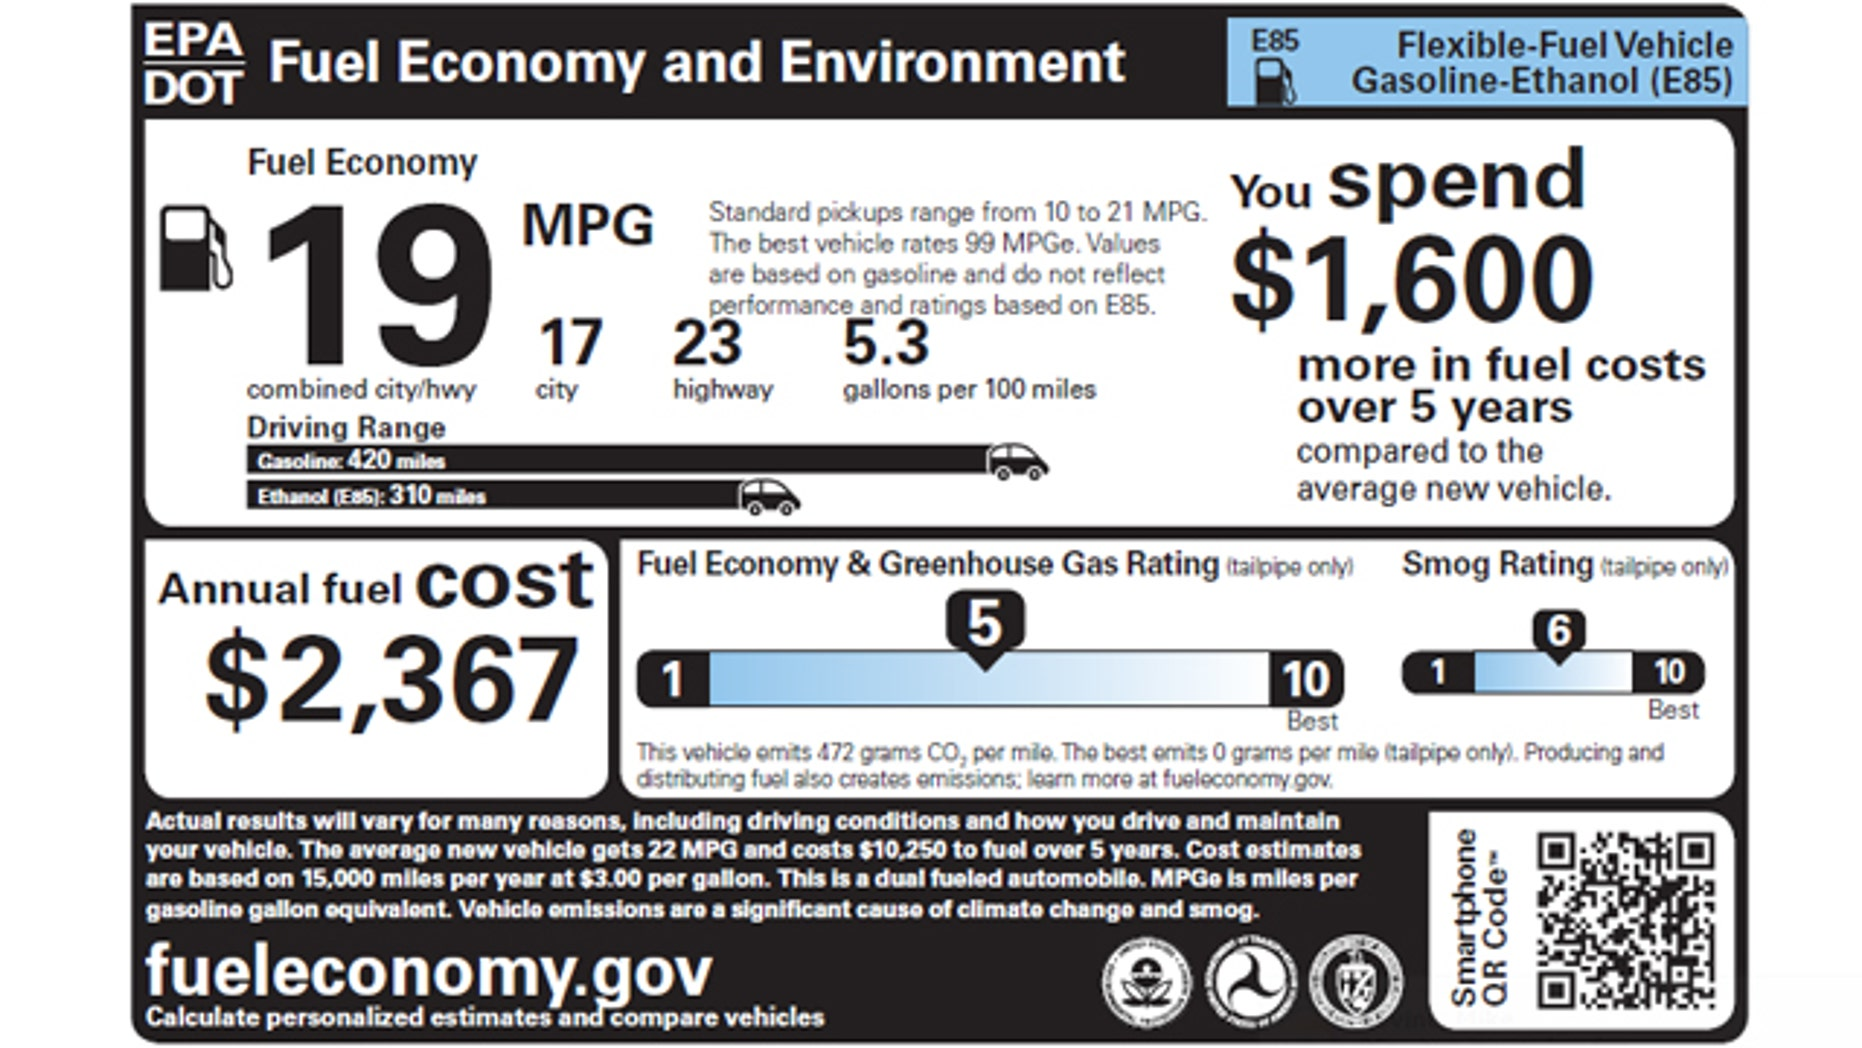 Shown here is a sample fuel economy label for a Ford F-150.